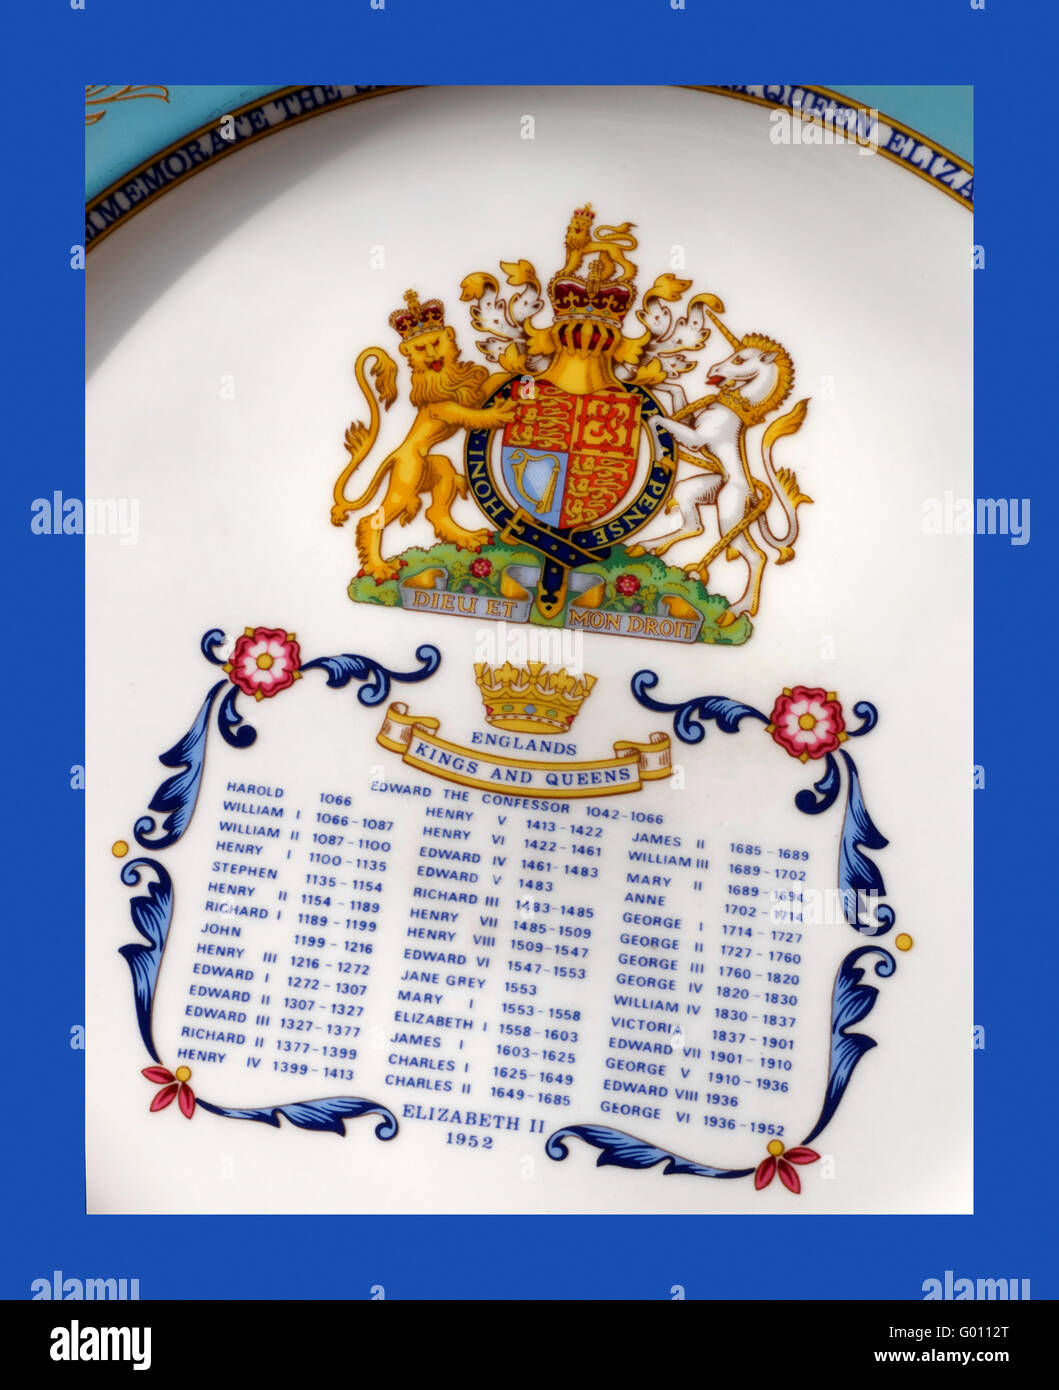 HM Queen Elizabeth 2nd commemorative plate with official coat of arms and list of all monarchs from King Harold - Stock Image